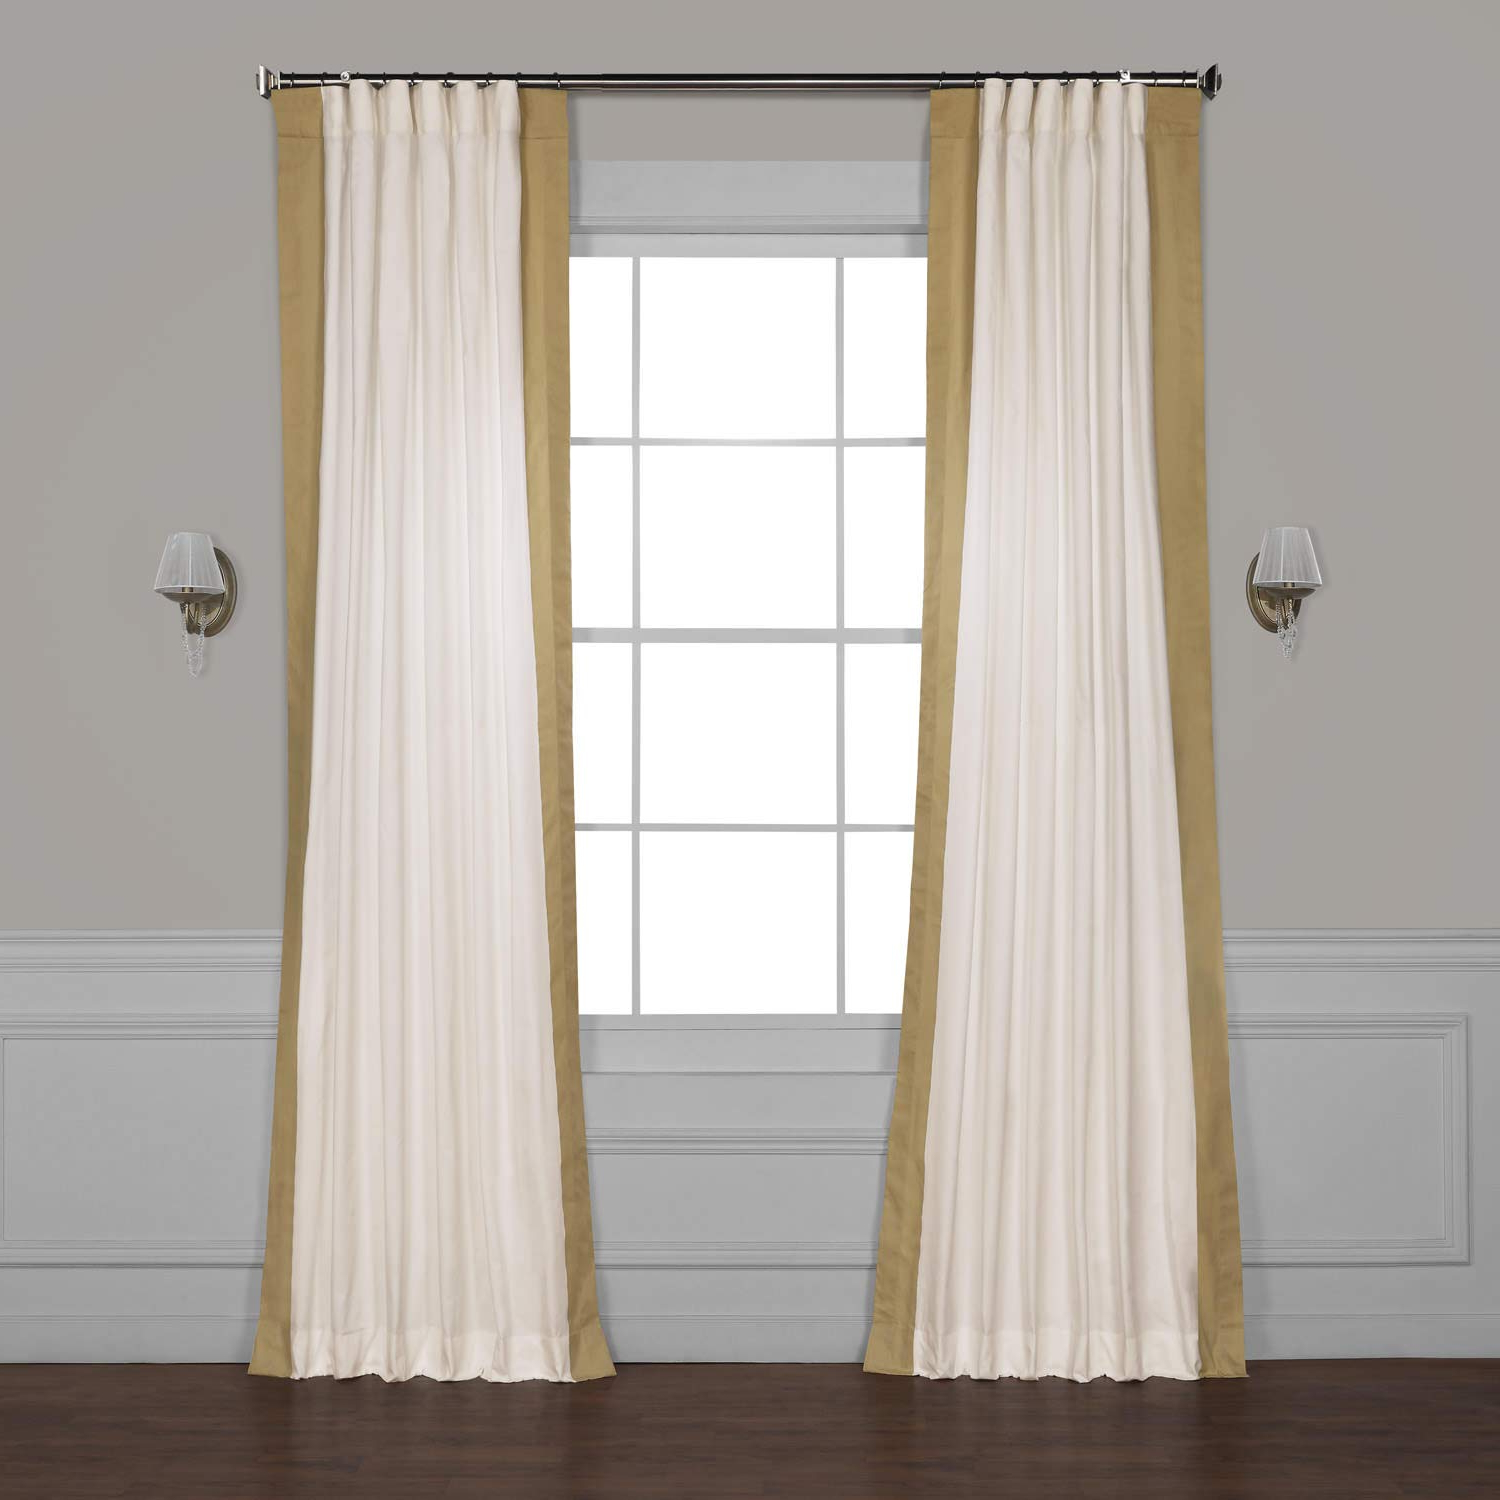 Vertical Colorblock Panama Curtains With Regard To Trendy Half Price Drapes Prct Vc1715 96 Vertical Colorblock Panama Curtain, Fresh Popcorn & Shaker Beige, 50 X (View 15 of 20)